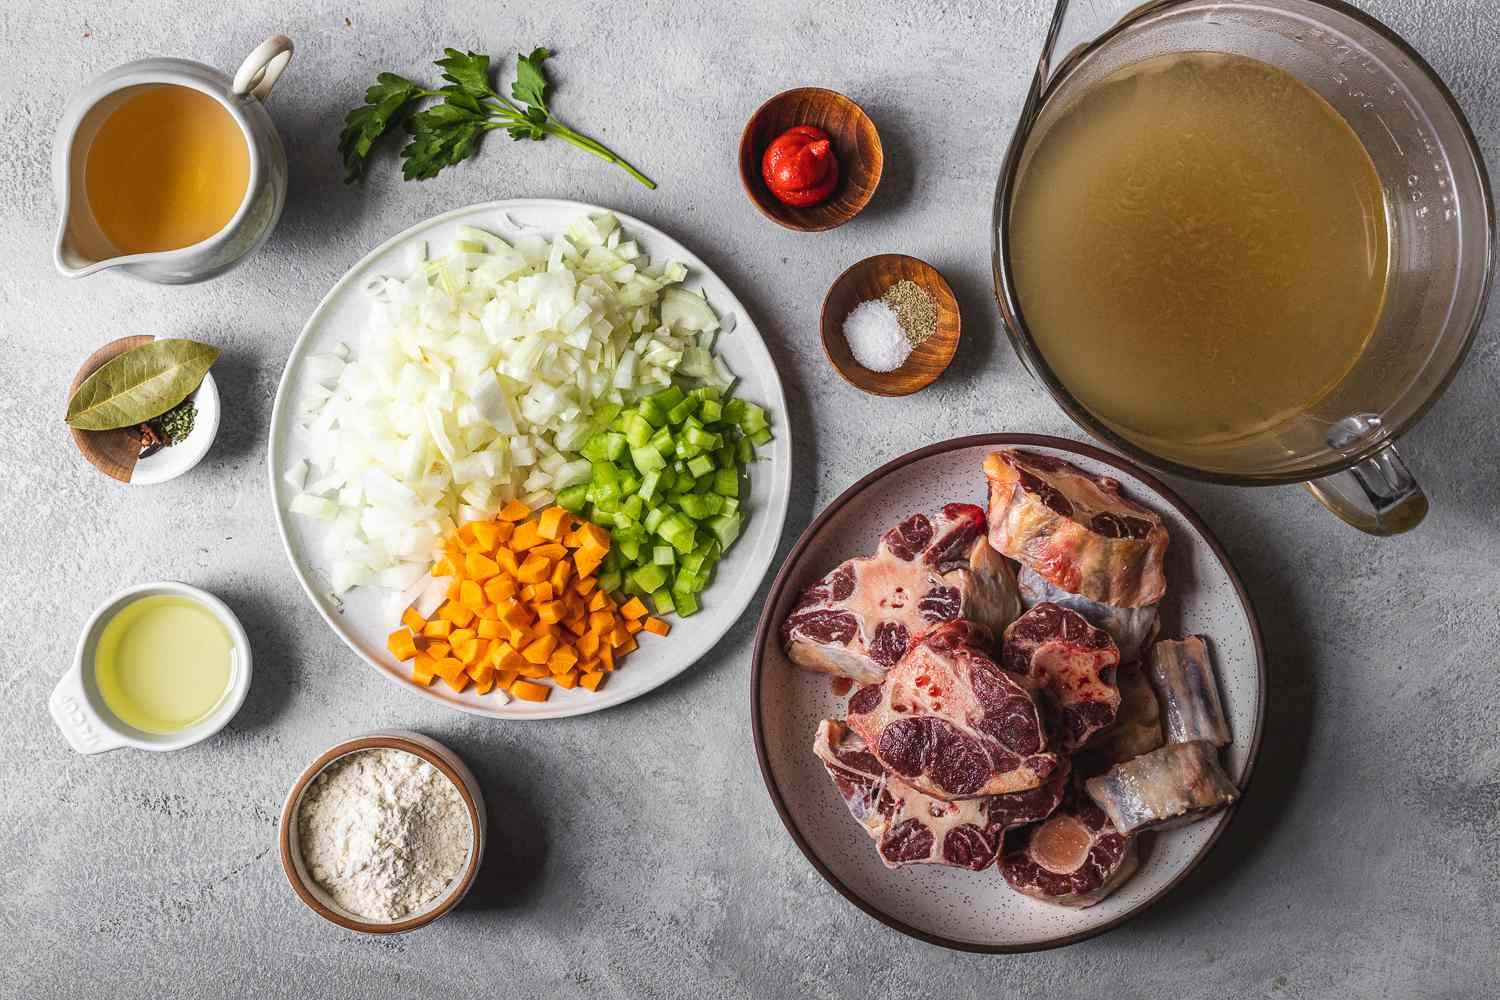 Ingredients for oxtail soup